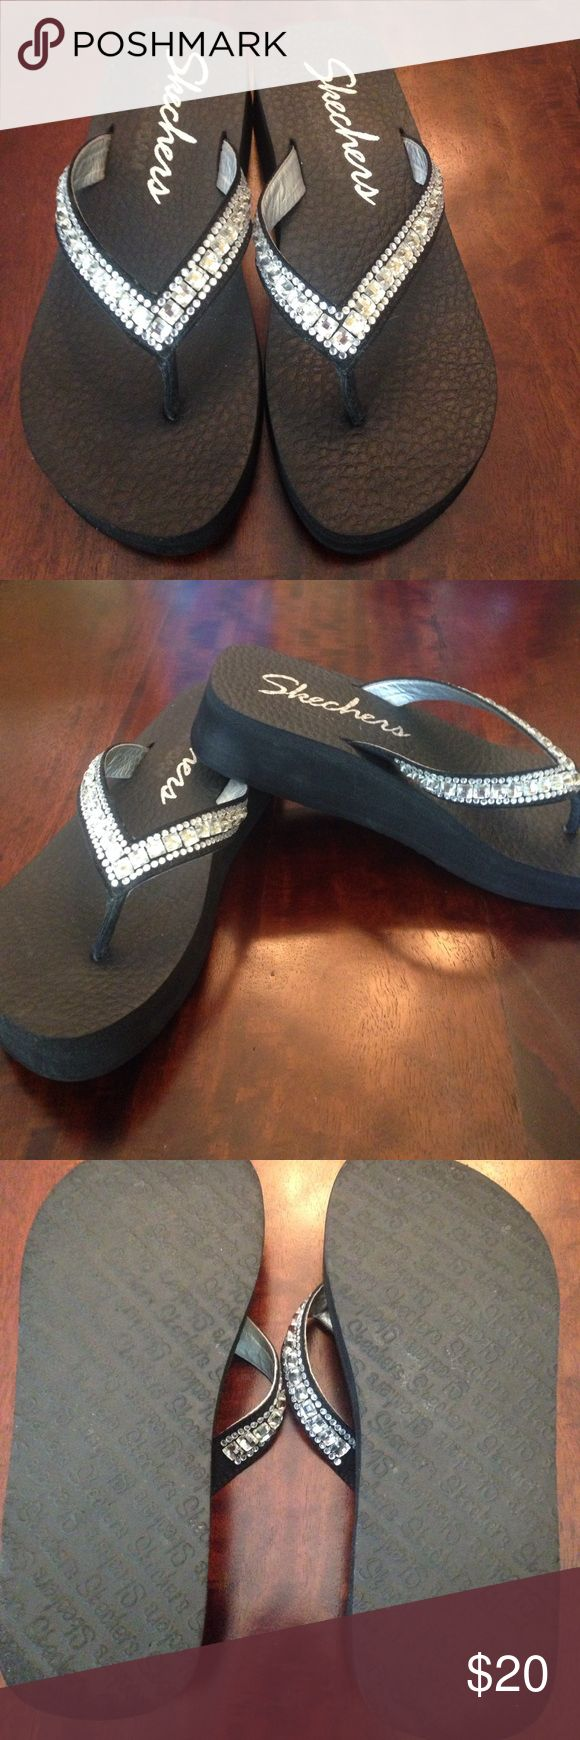 Skechers Sandal with Wedge Heel Flip Flops Excellent condition; no stains; memory foam to cushion and form to your foot; wedge-style heels; glittering rhinestone accents on straps (none missing) Super-comfy!! Skechers Shoes Sandals